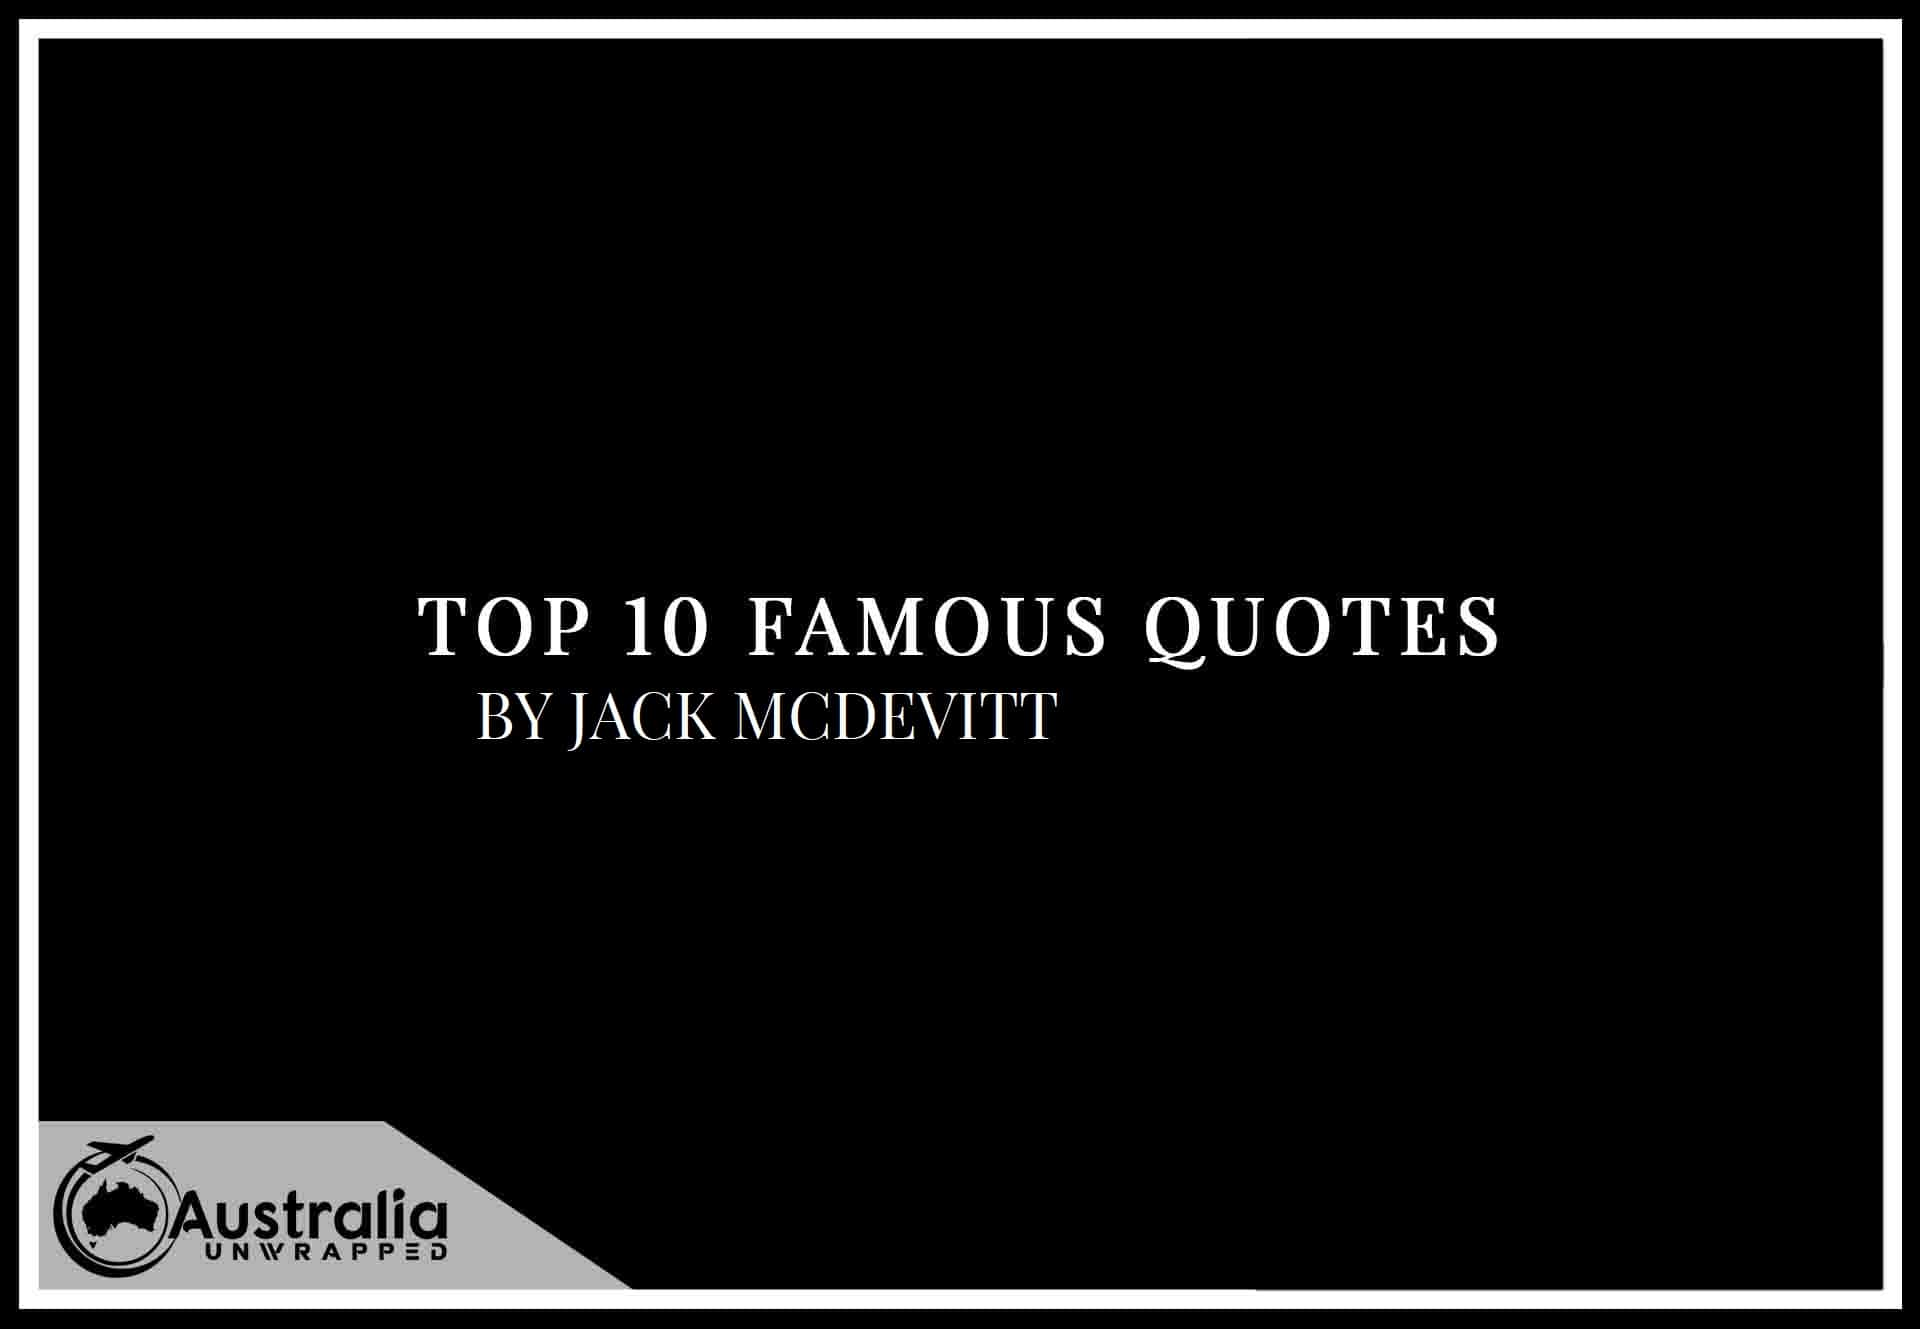 Top 10 Famous Quotes by Author Jack McDevitt